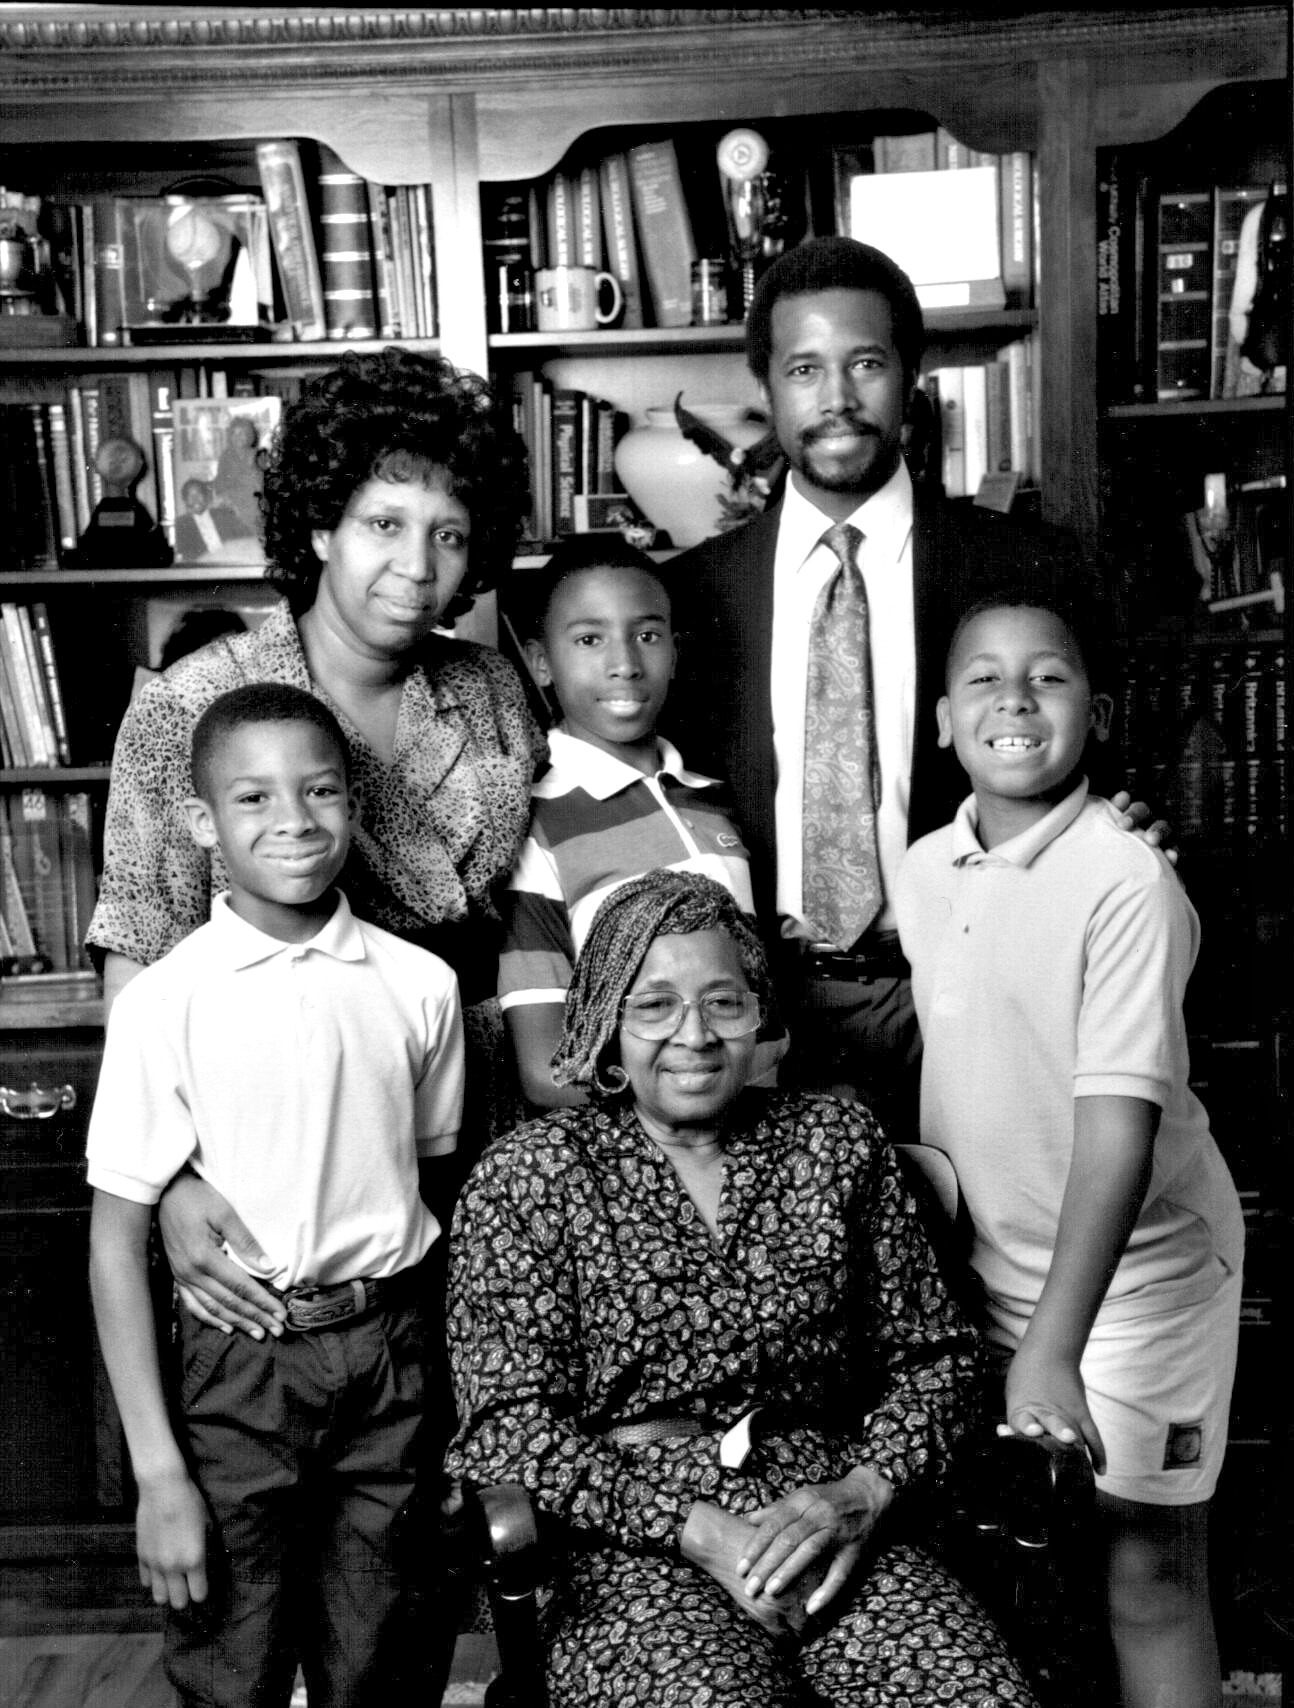 the importance of parenting in the life of benjamin carson Dr benjamin carson is director of pediatric neurosurgery at johns hopkins children`s center his expertise includes separating conjoined twins and doing brain surgery to control seizures a scholarship fund carson founded has helped some 1,700 students through college.